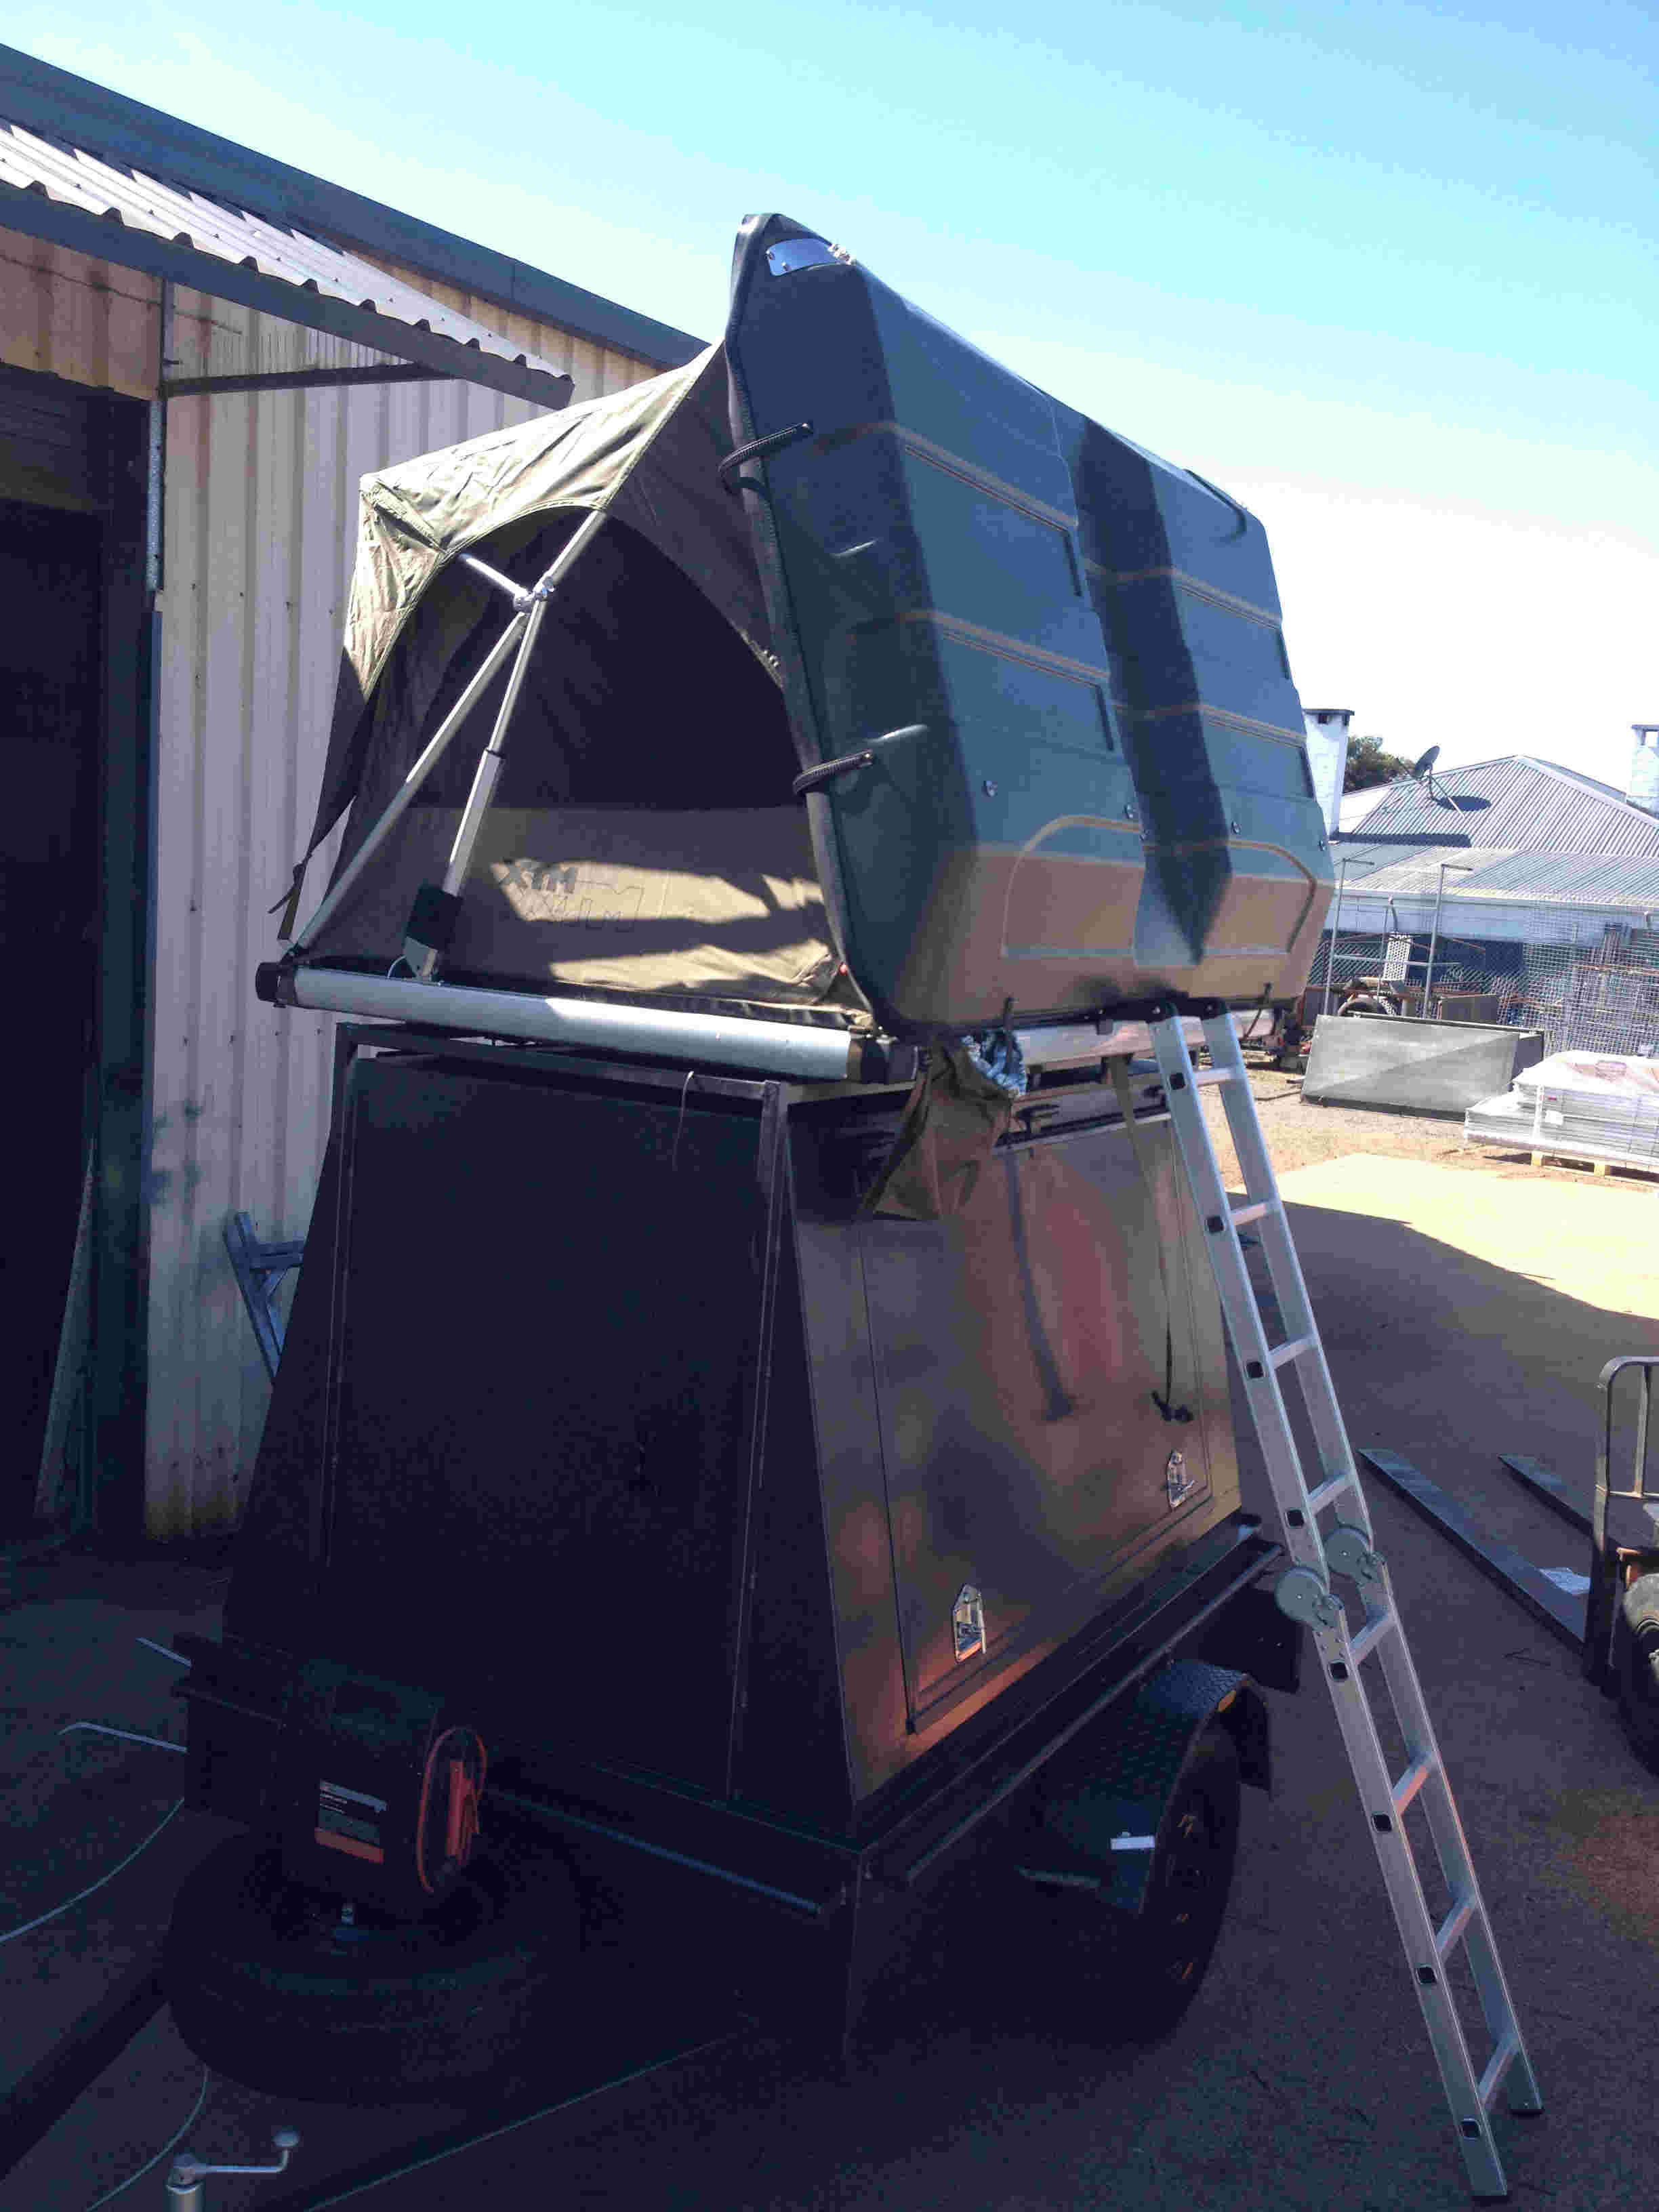 enclosed camper trailer